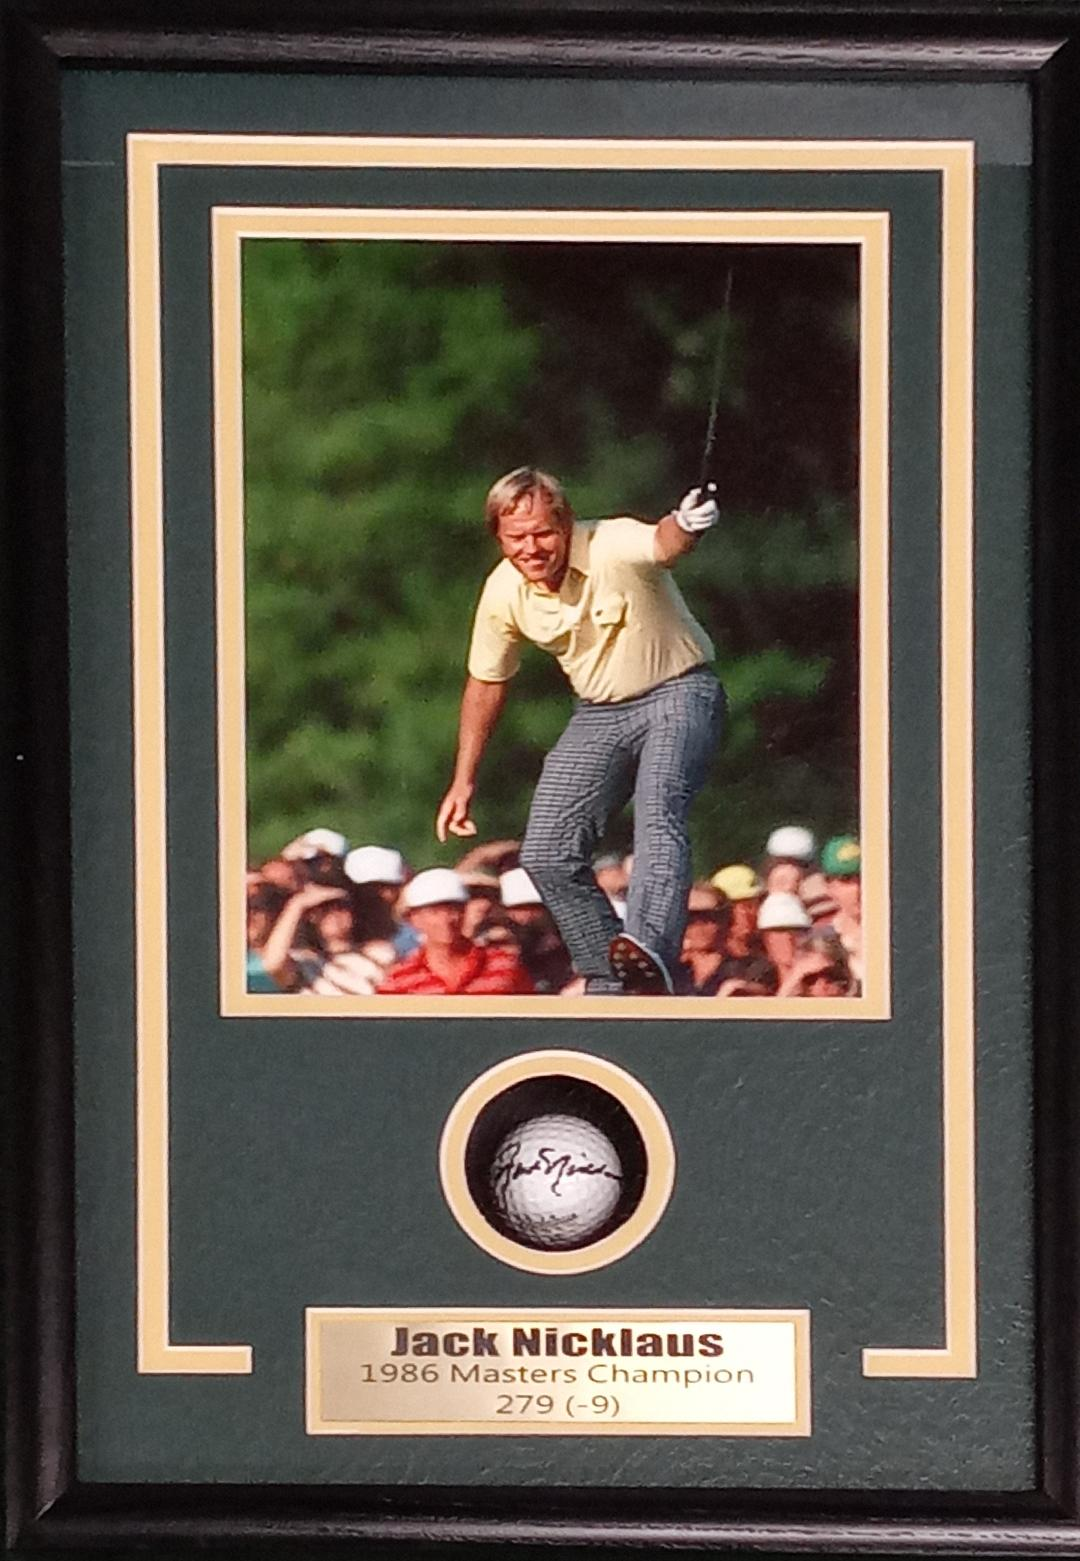 JACK NICKLAUS SIGNED GOLF BALL SHADOWBOX